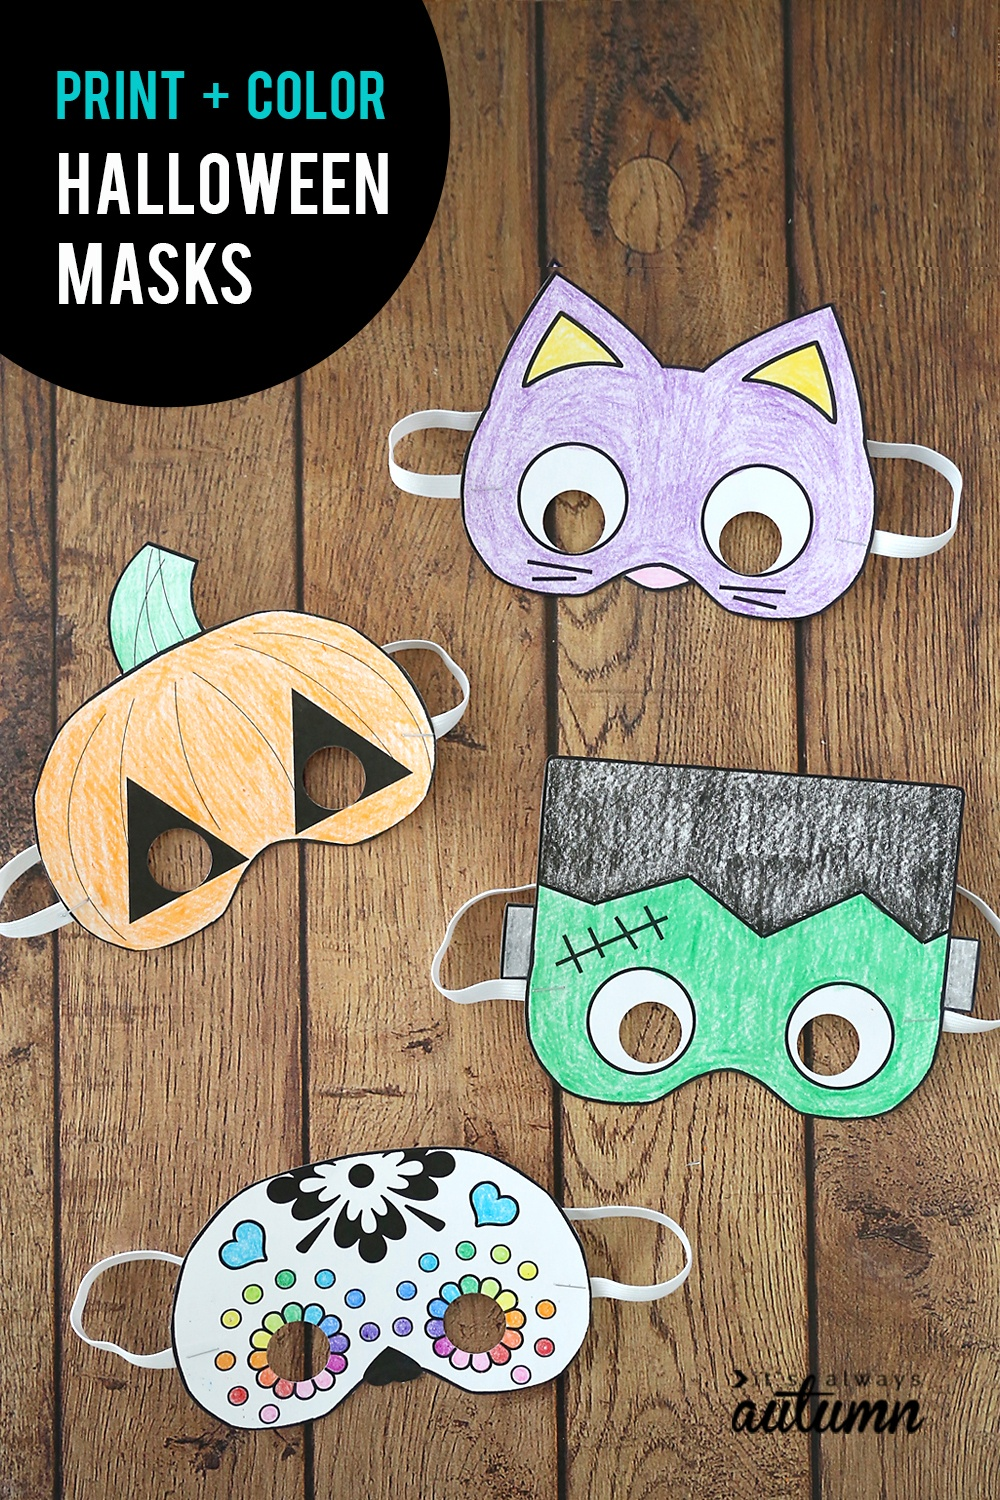 Halloween Masks To Print And Color - It's Always Autumn - Halloween Crafts For Kids Free Printable